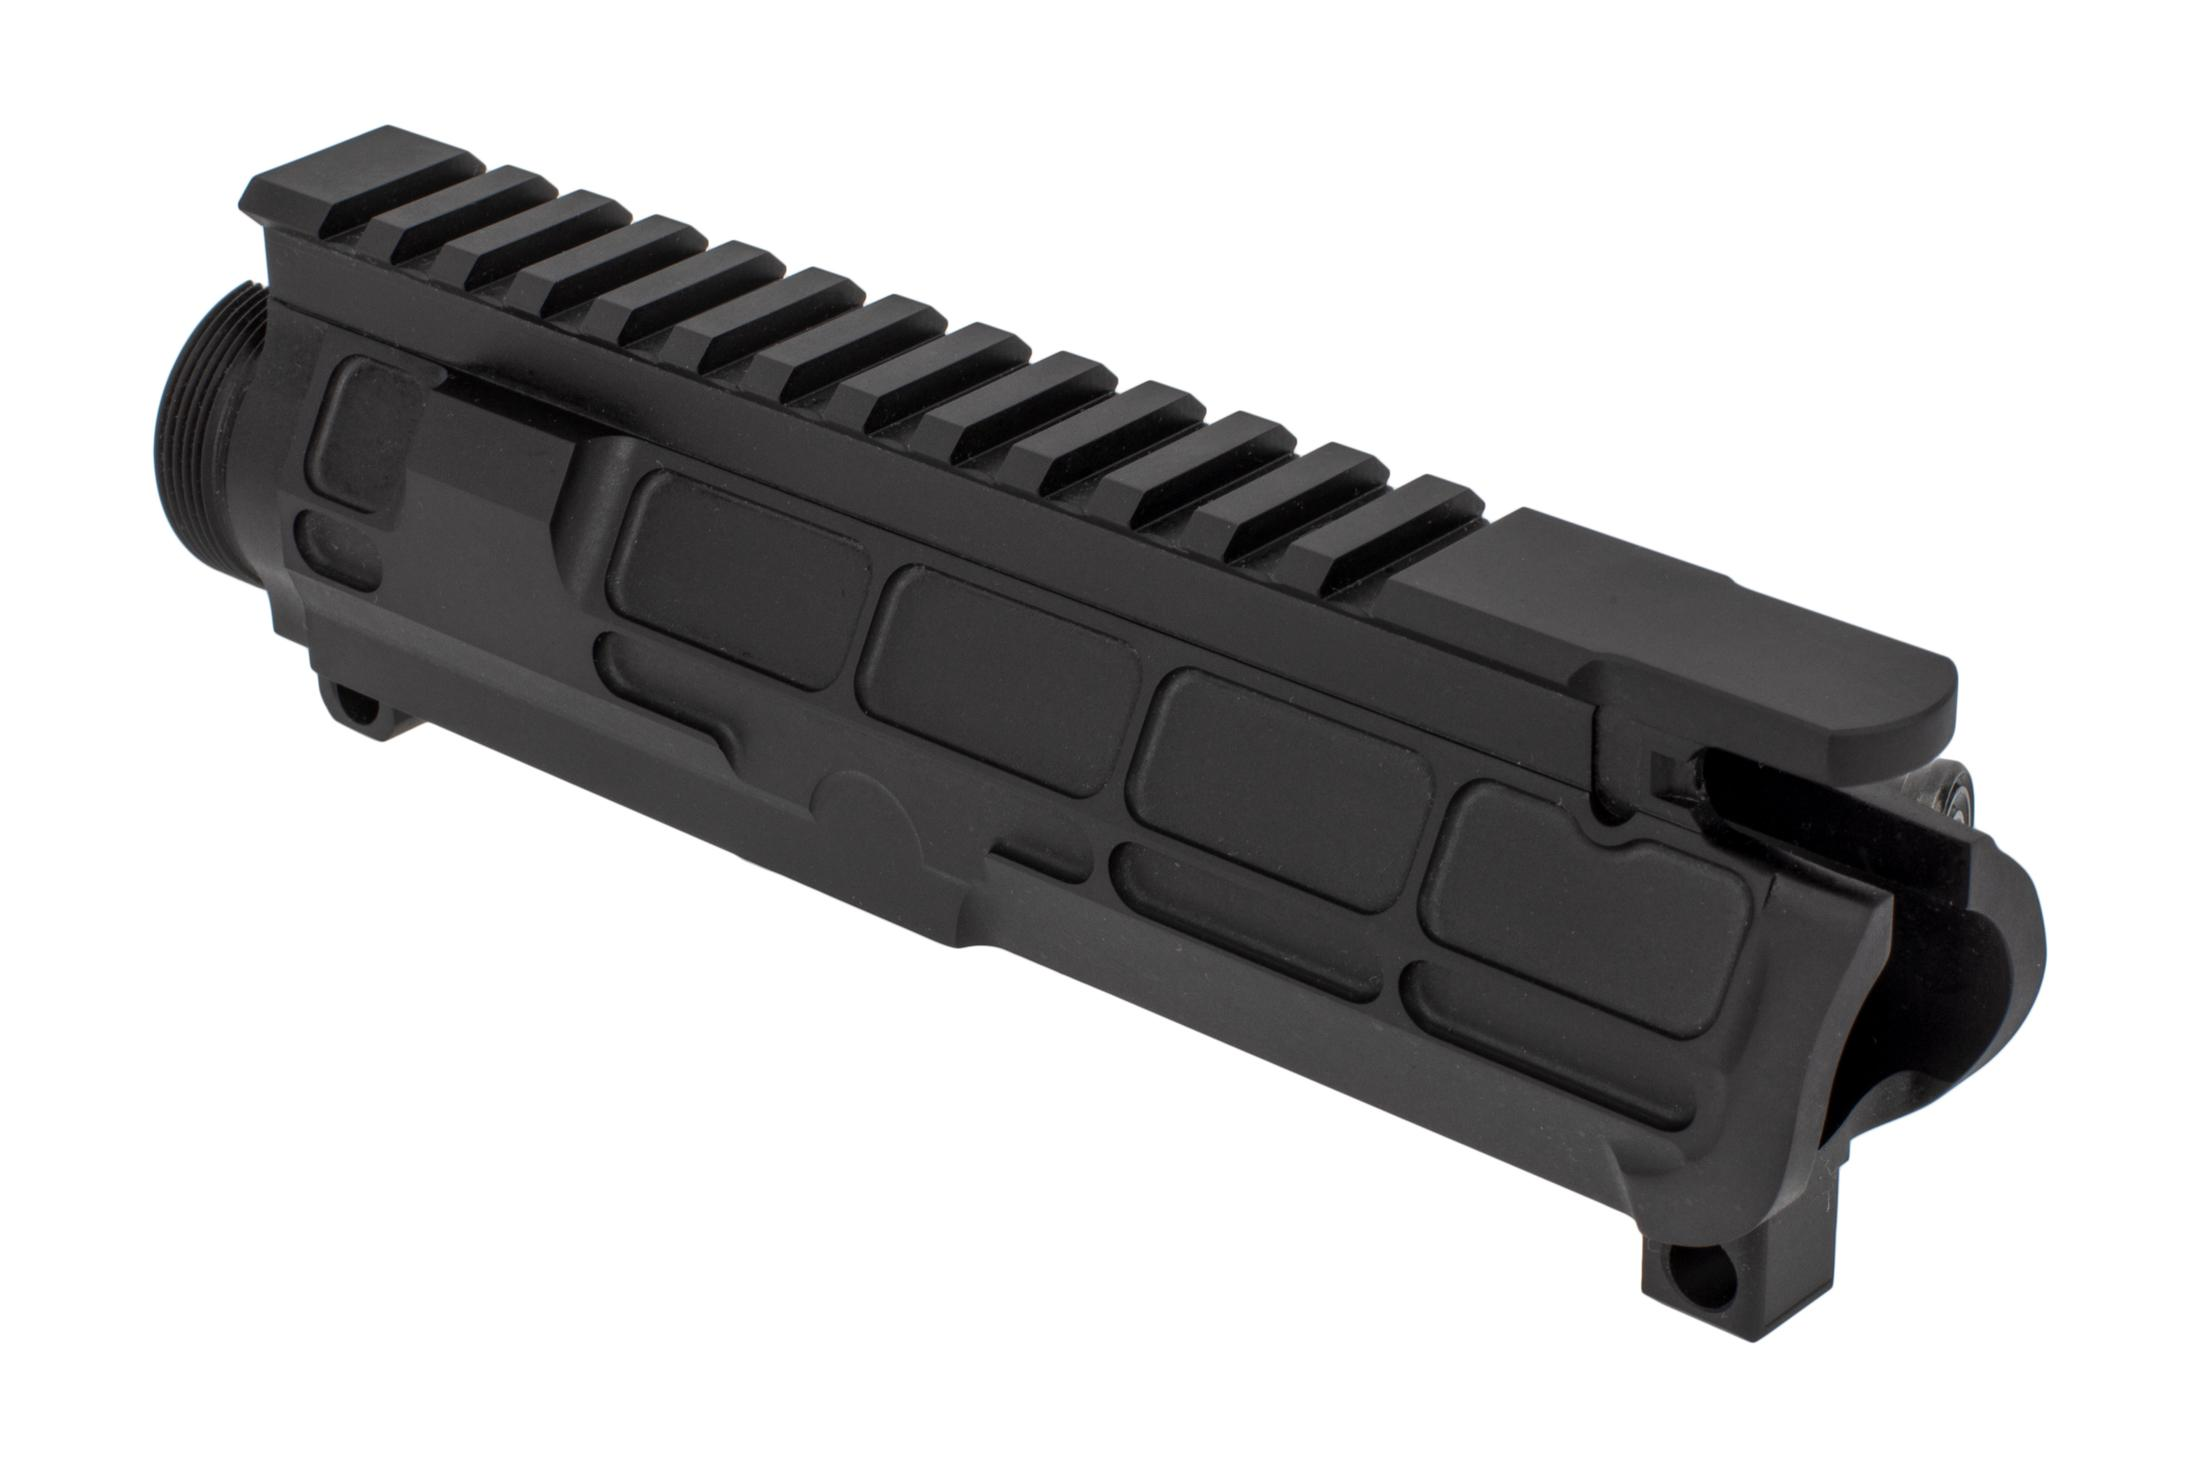 San Tan Tactical AR 15 billet upper in the PILLAR line features an AESTHETIC pocketed look for reduced weight